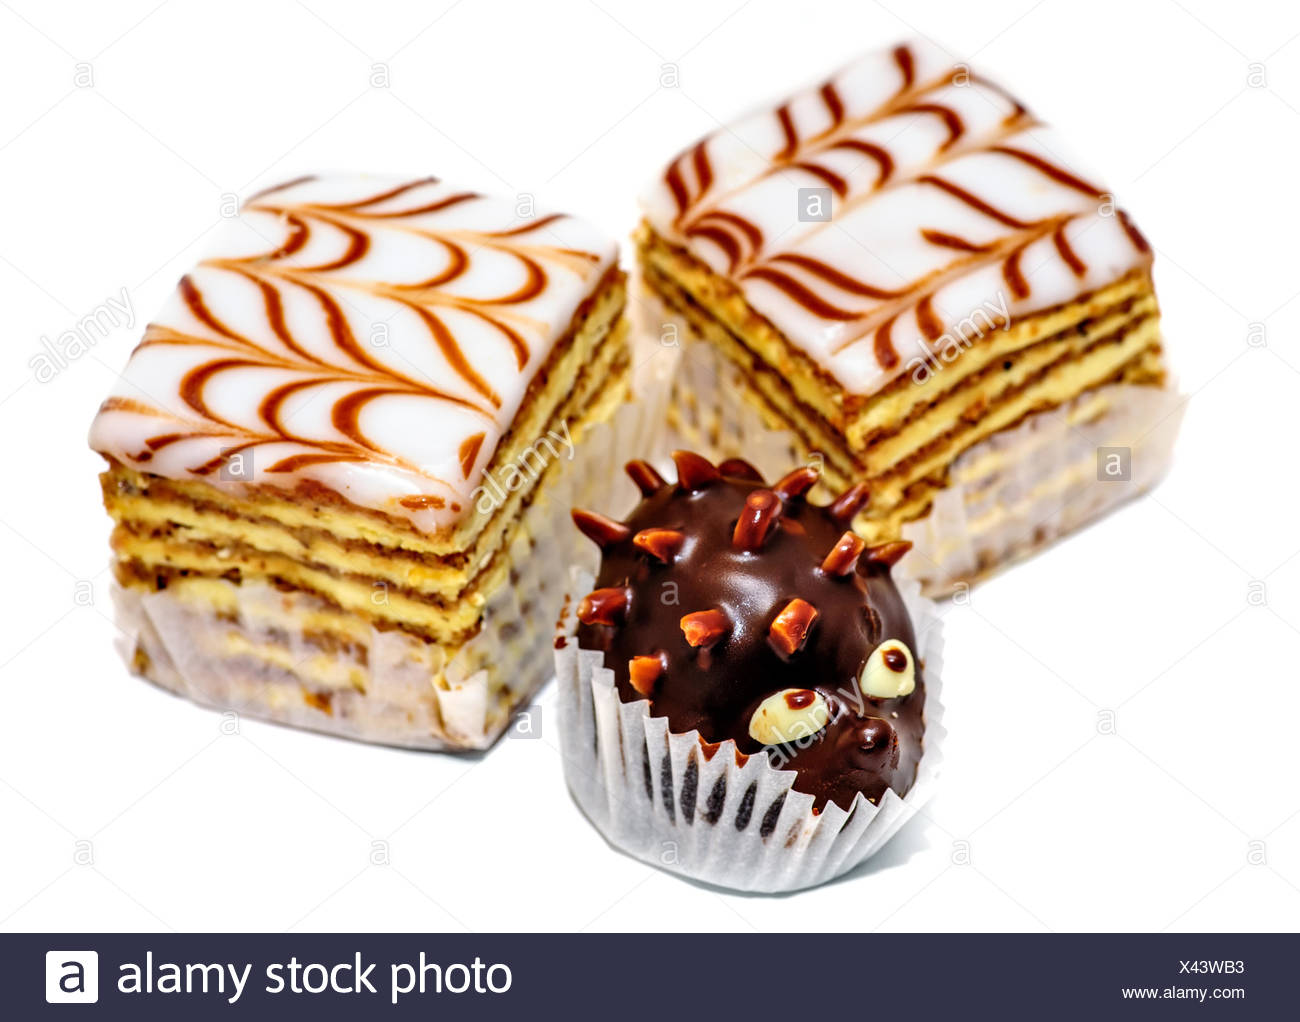 Layered cakes and chocolate hedgehog isolated - Stock Image